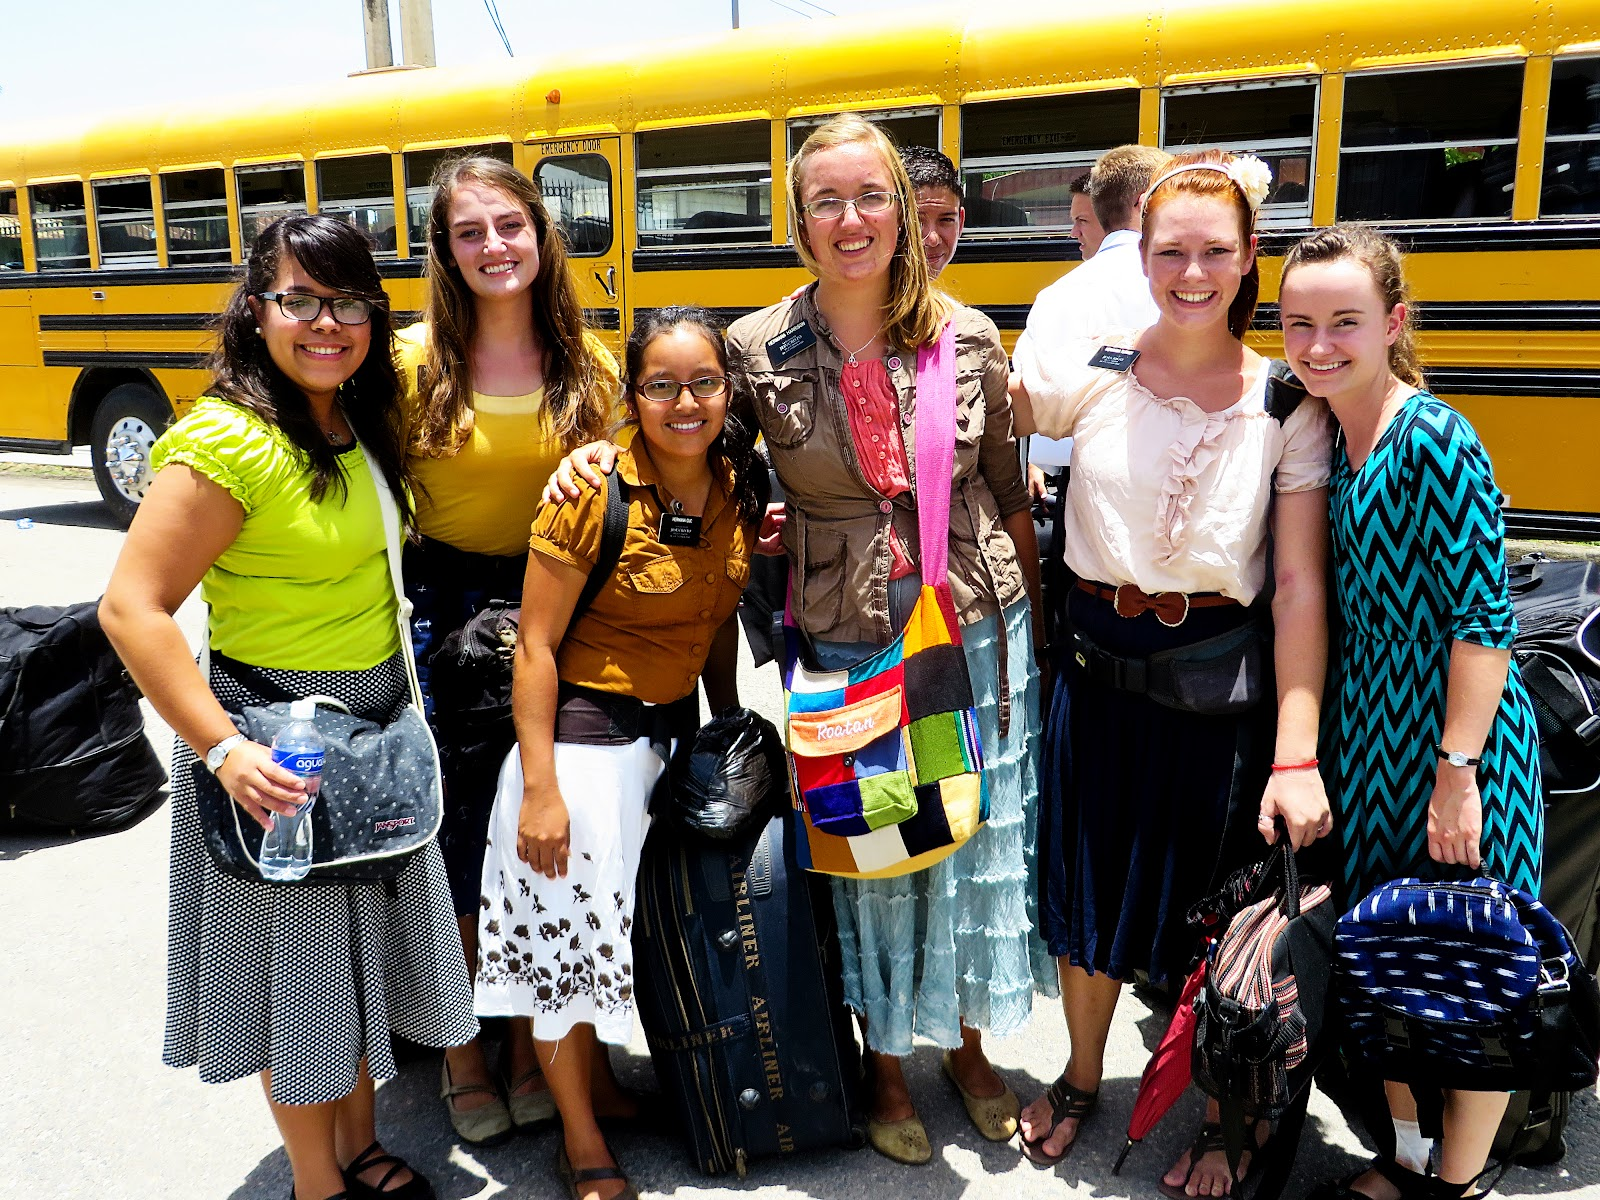 LDS sister missionaries go about doing good!